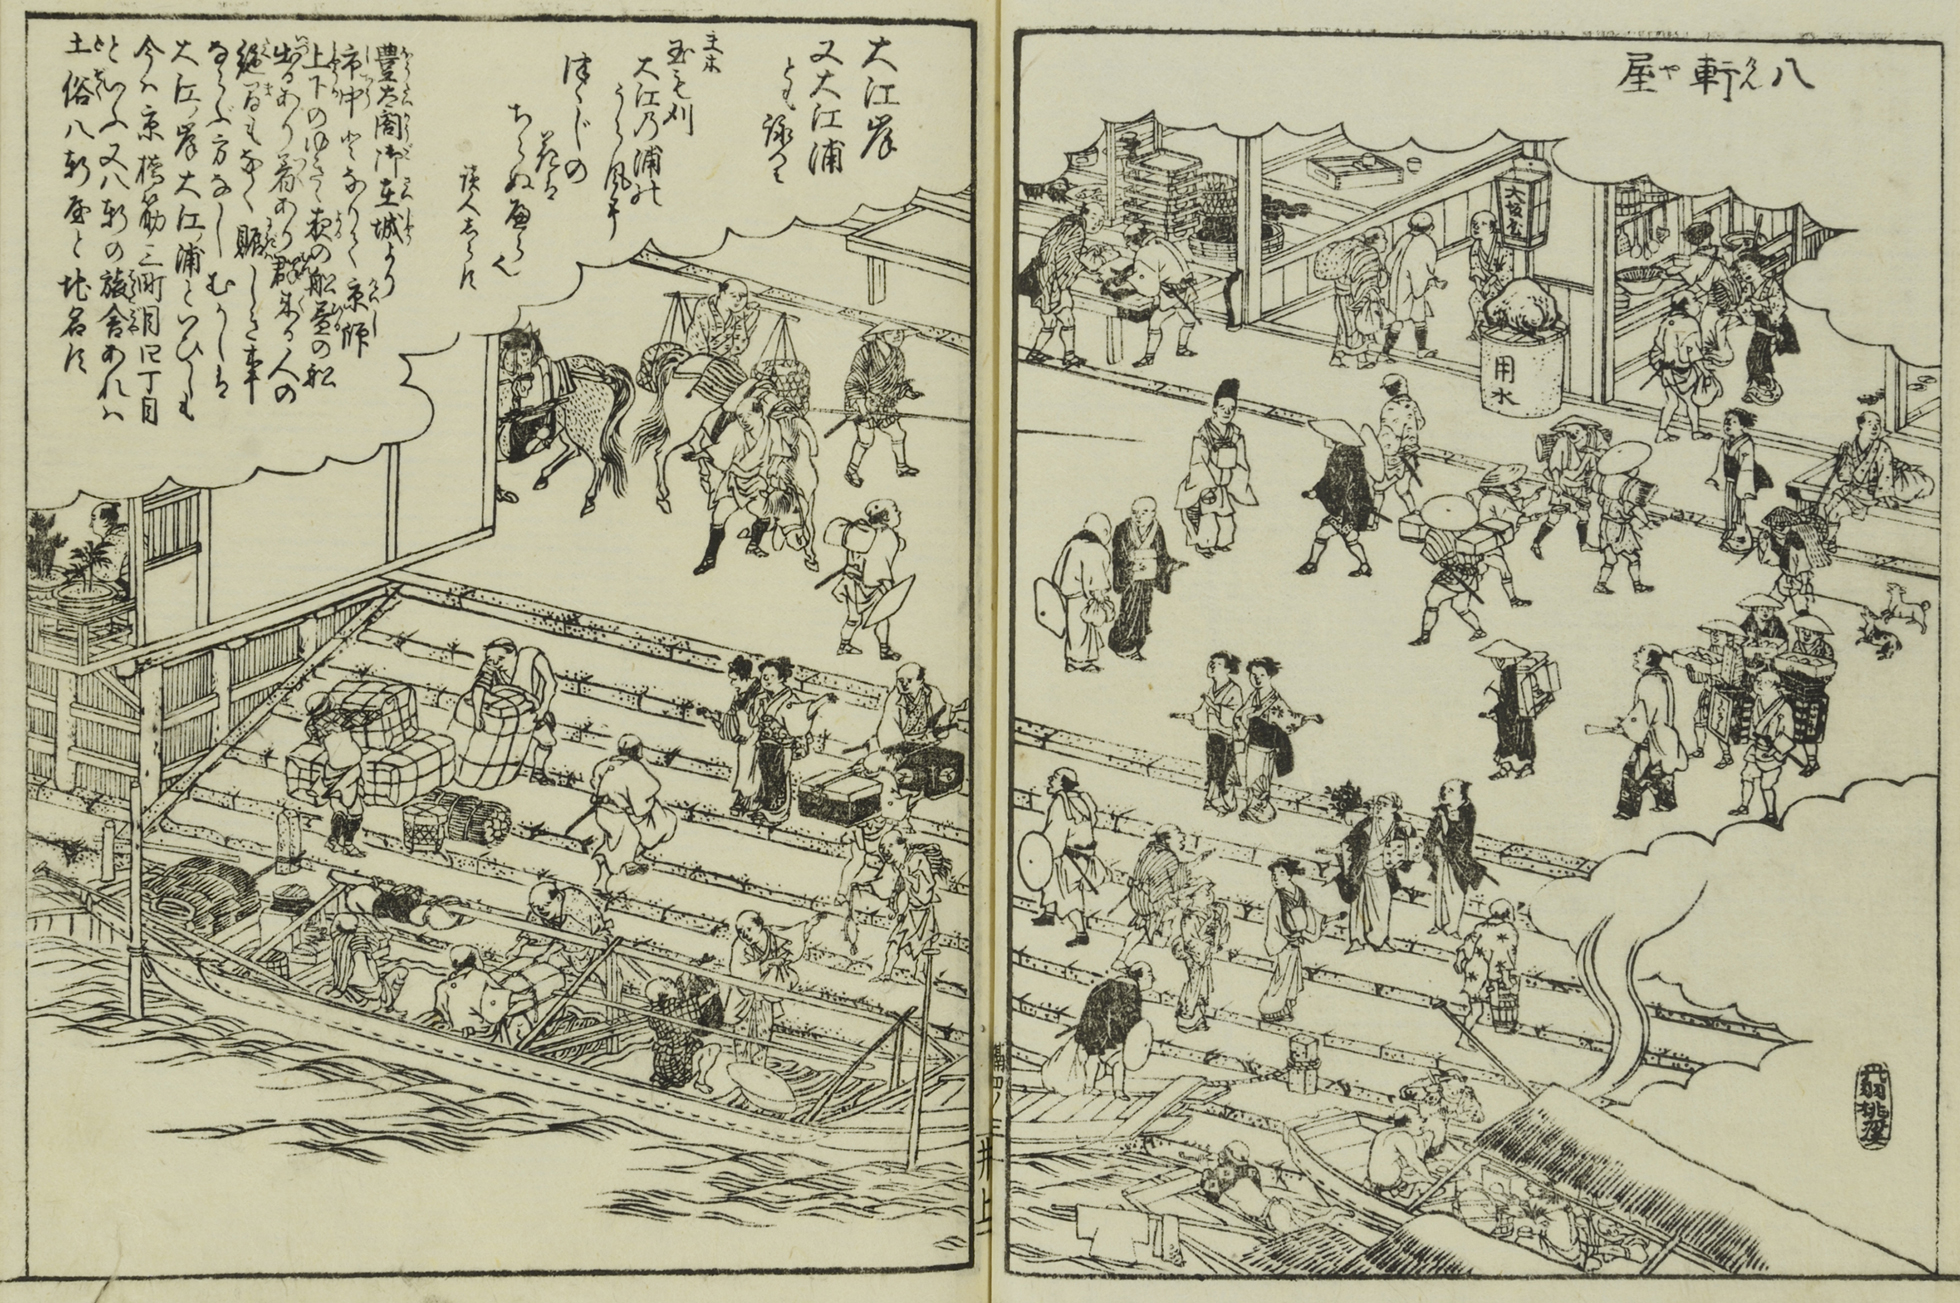 A black and white woodblock print showing ships docking at the boat terminal, and people and goods being unloaded onto the quay.